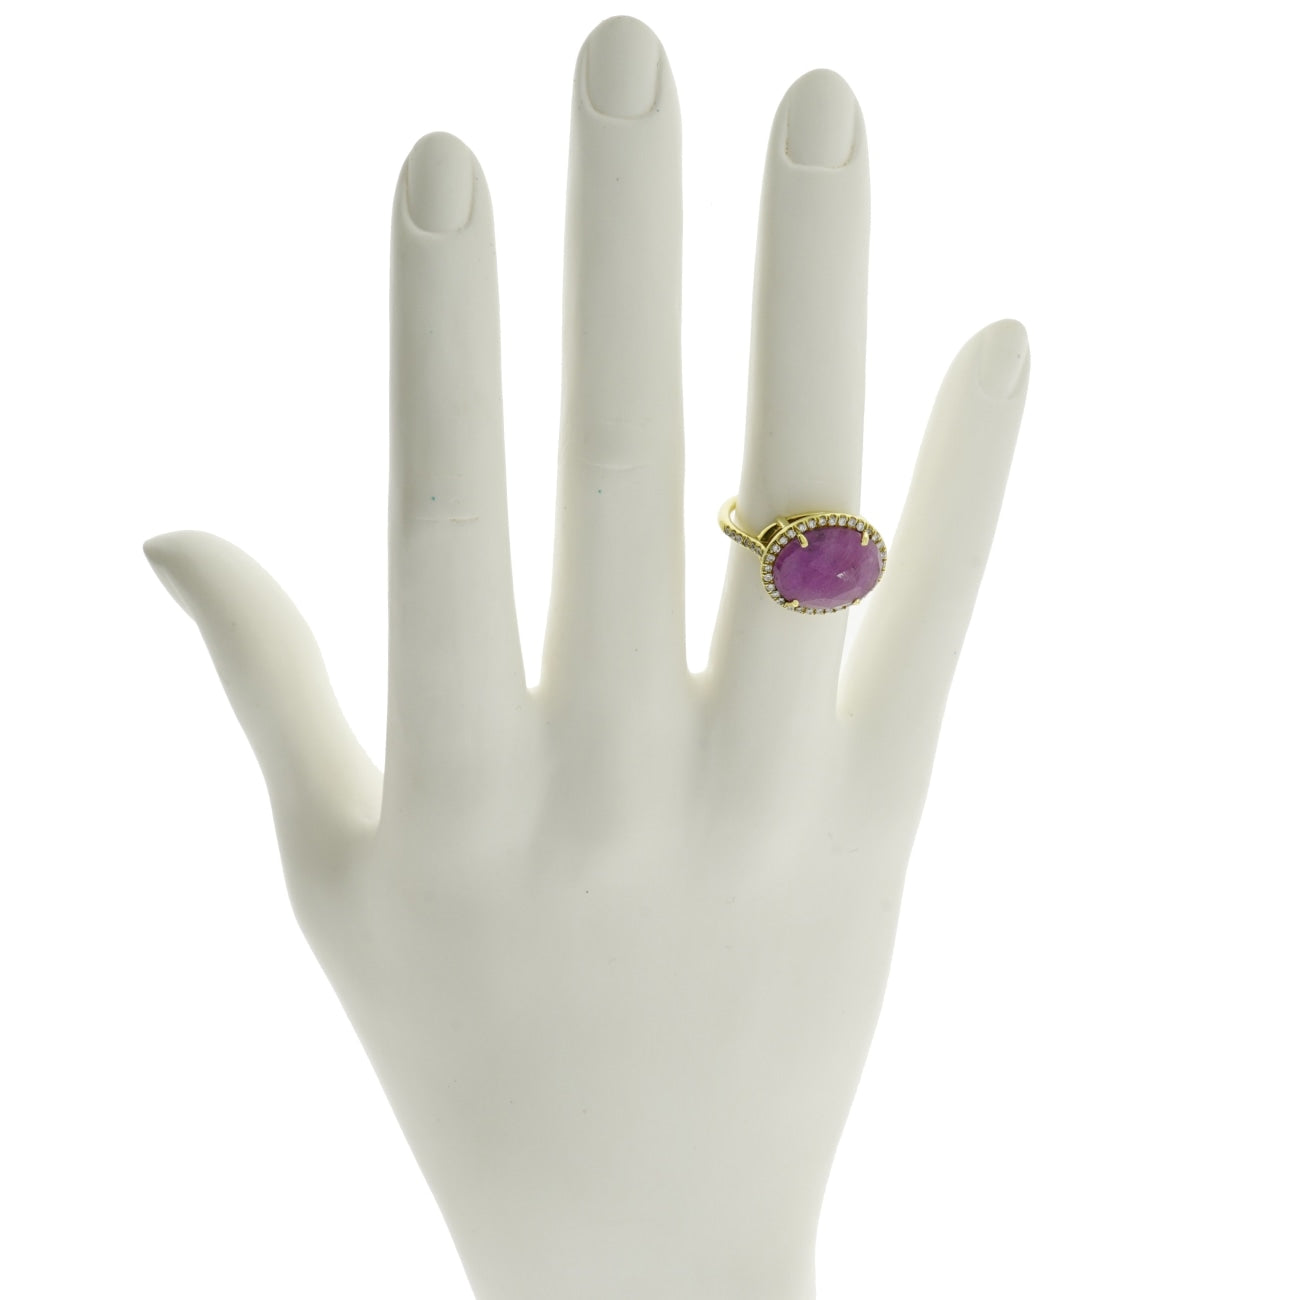 Lauren K Jewelry - Oval Pink Sapphire & Diamond Yellow Gold Ring | Manfredi Jewels